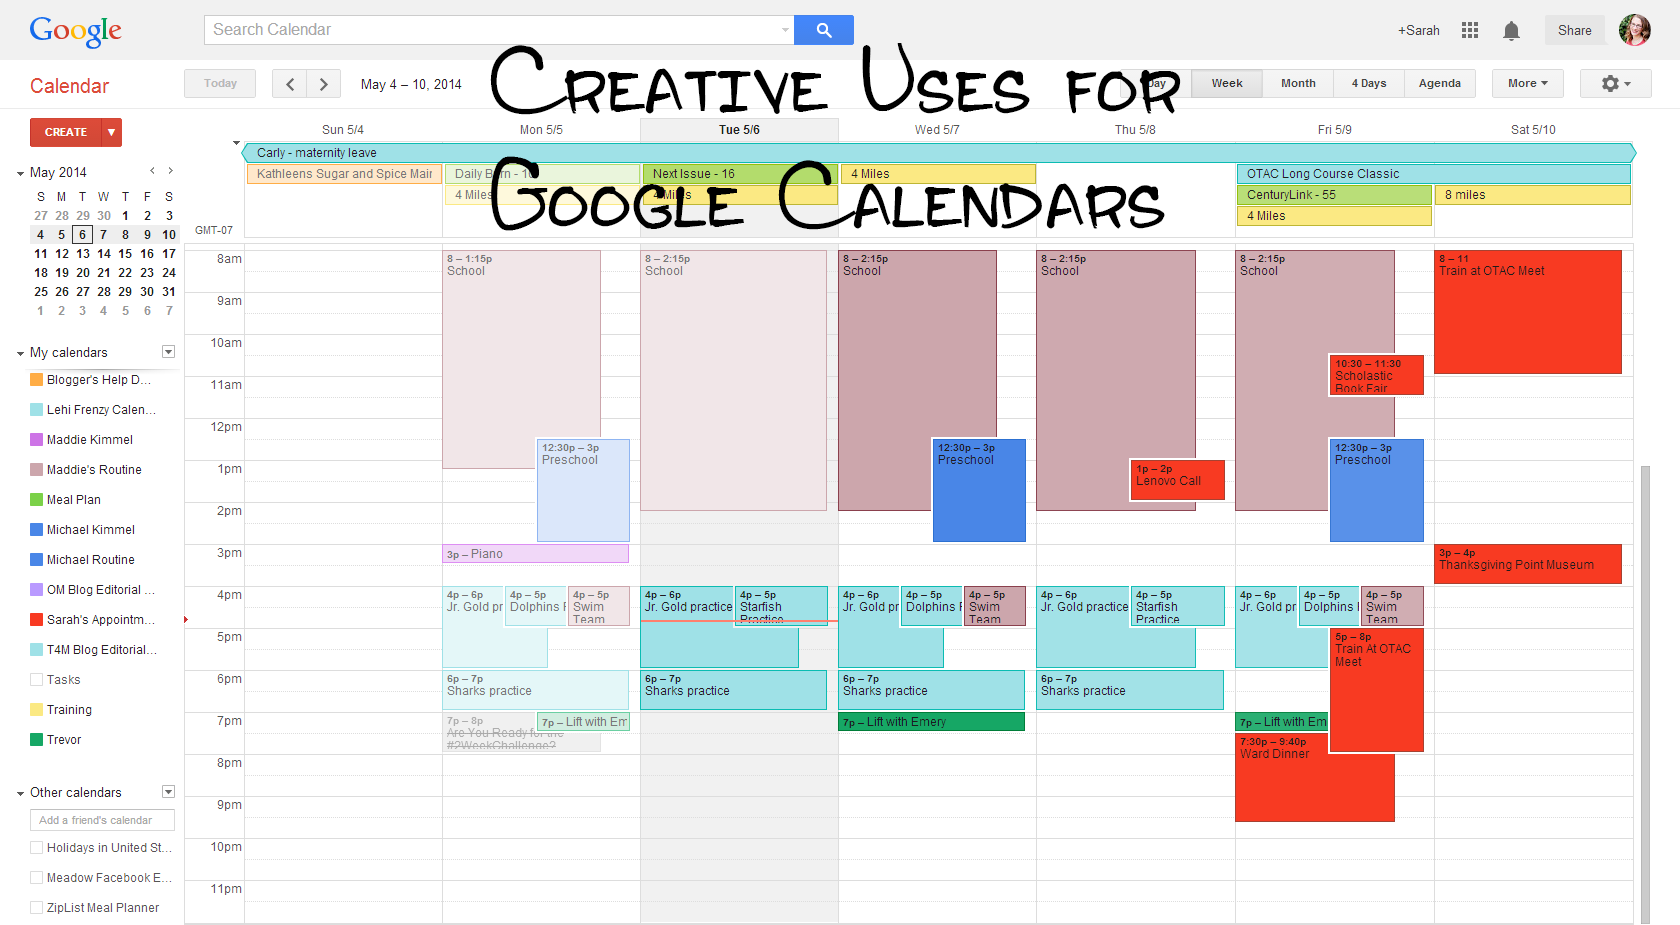 Creative Uses for Google Calendar